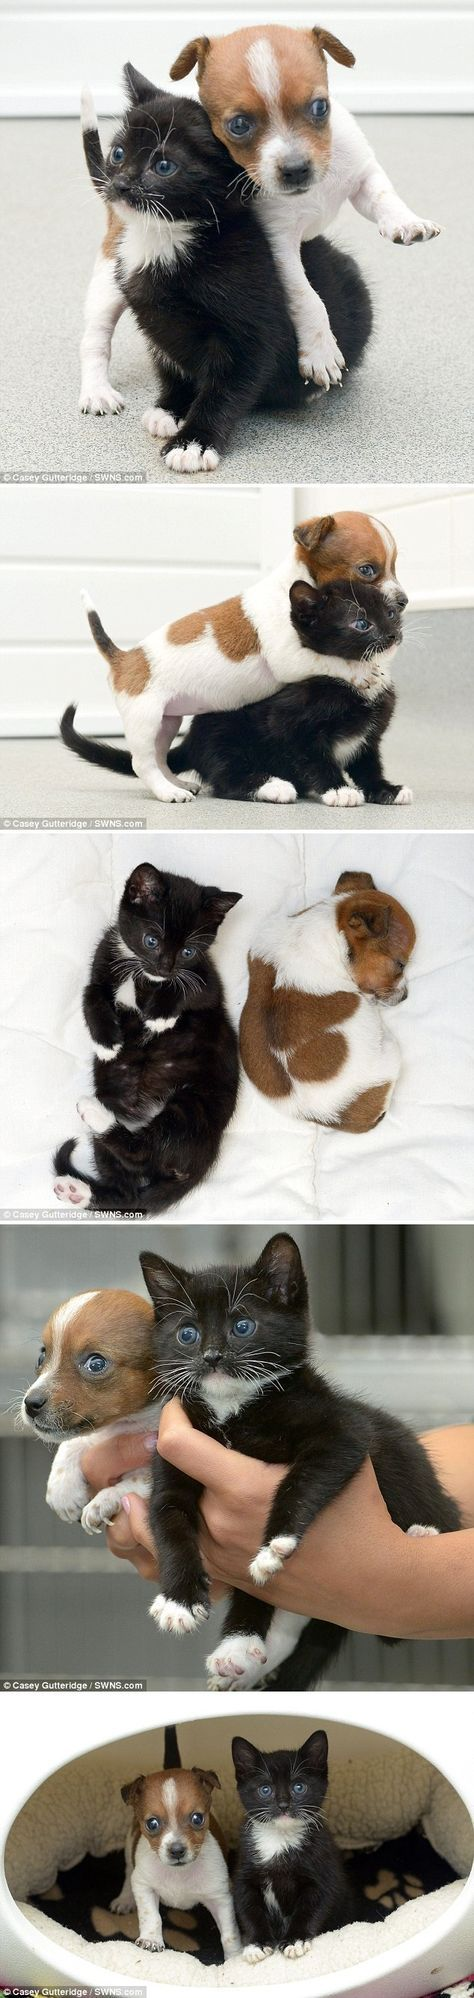 The best part? This rescue cat and dog duo will grow up to be about the same size. ♥